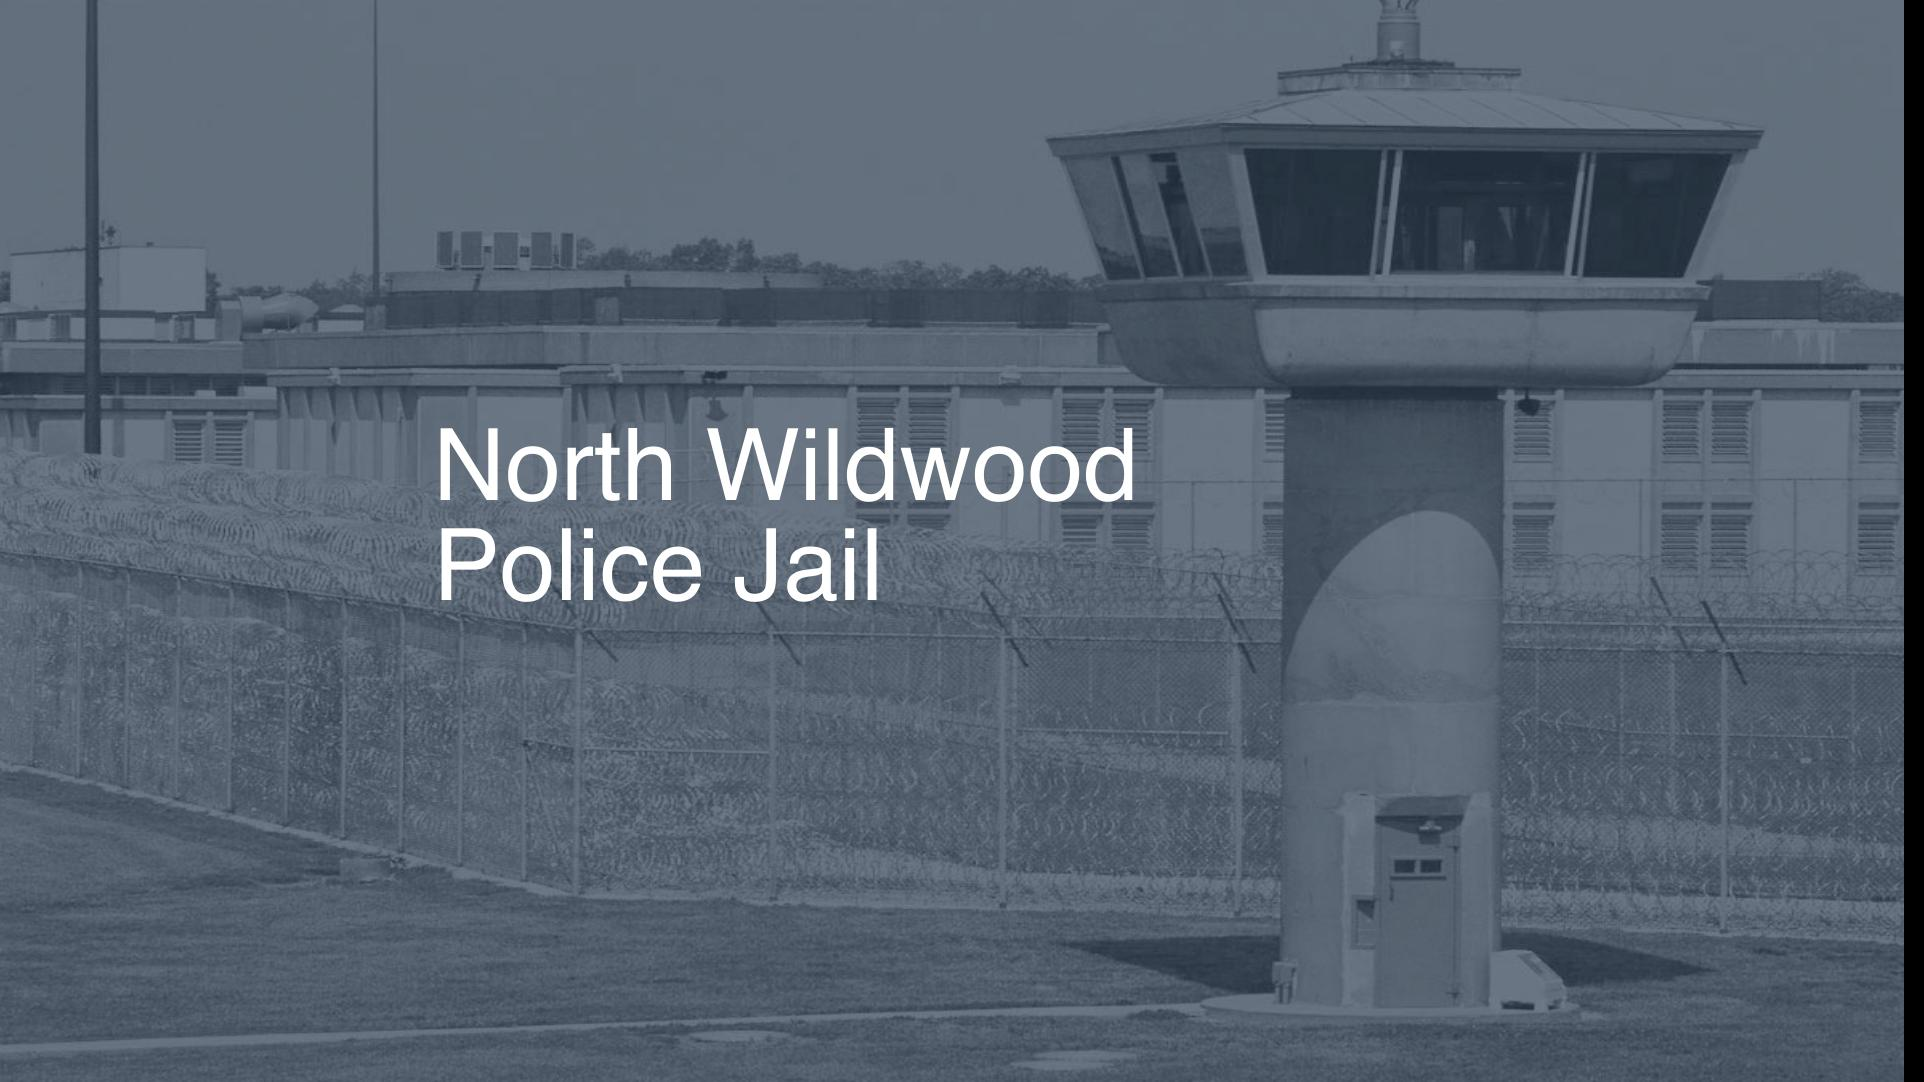 North Wildwood Police Jail correctional facility picture